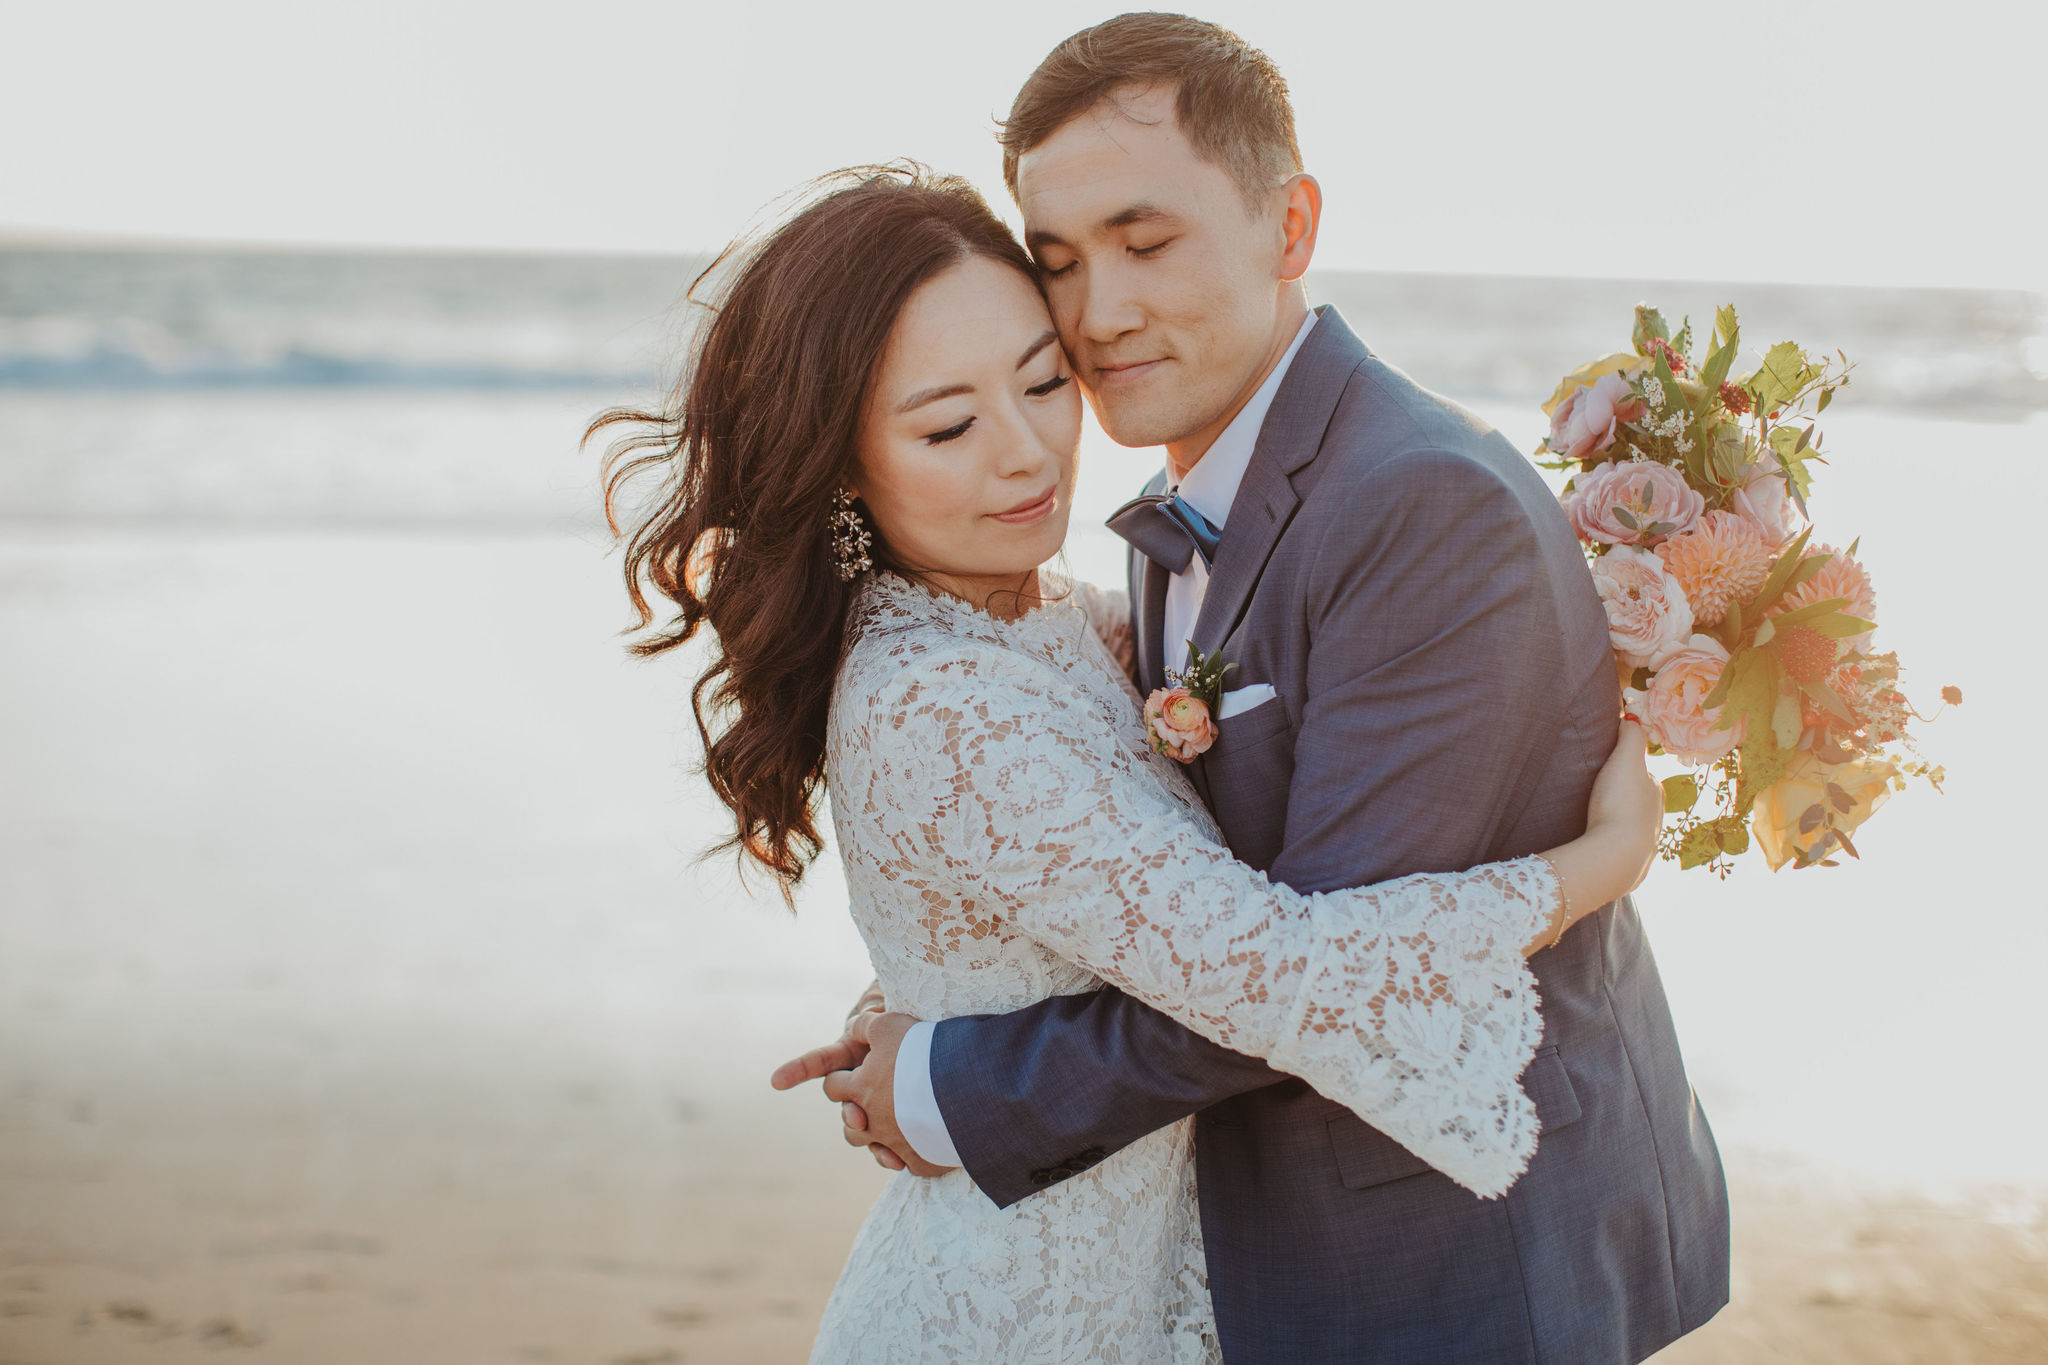 Wedding Hug | Verandas Beach House